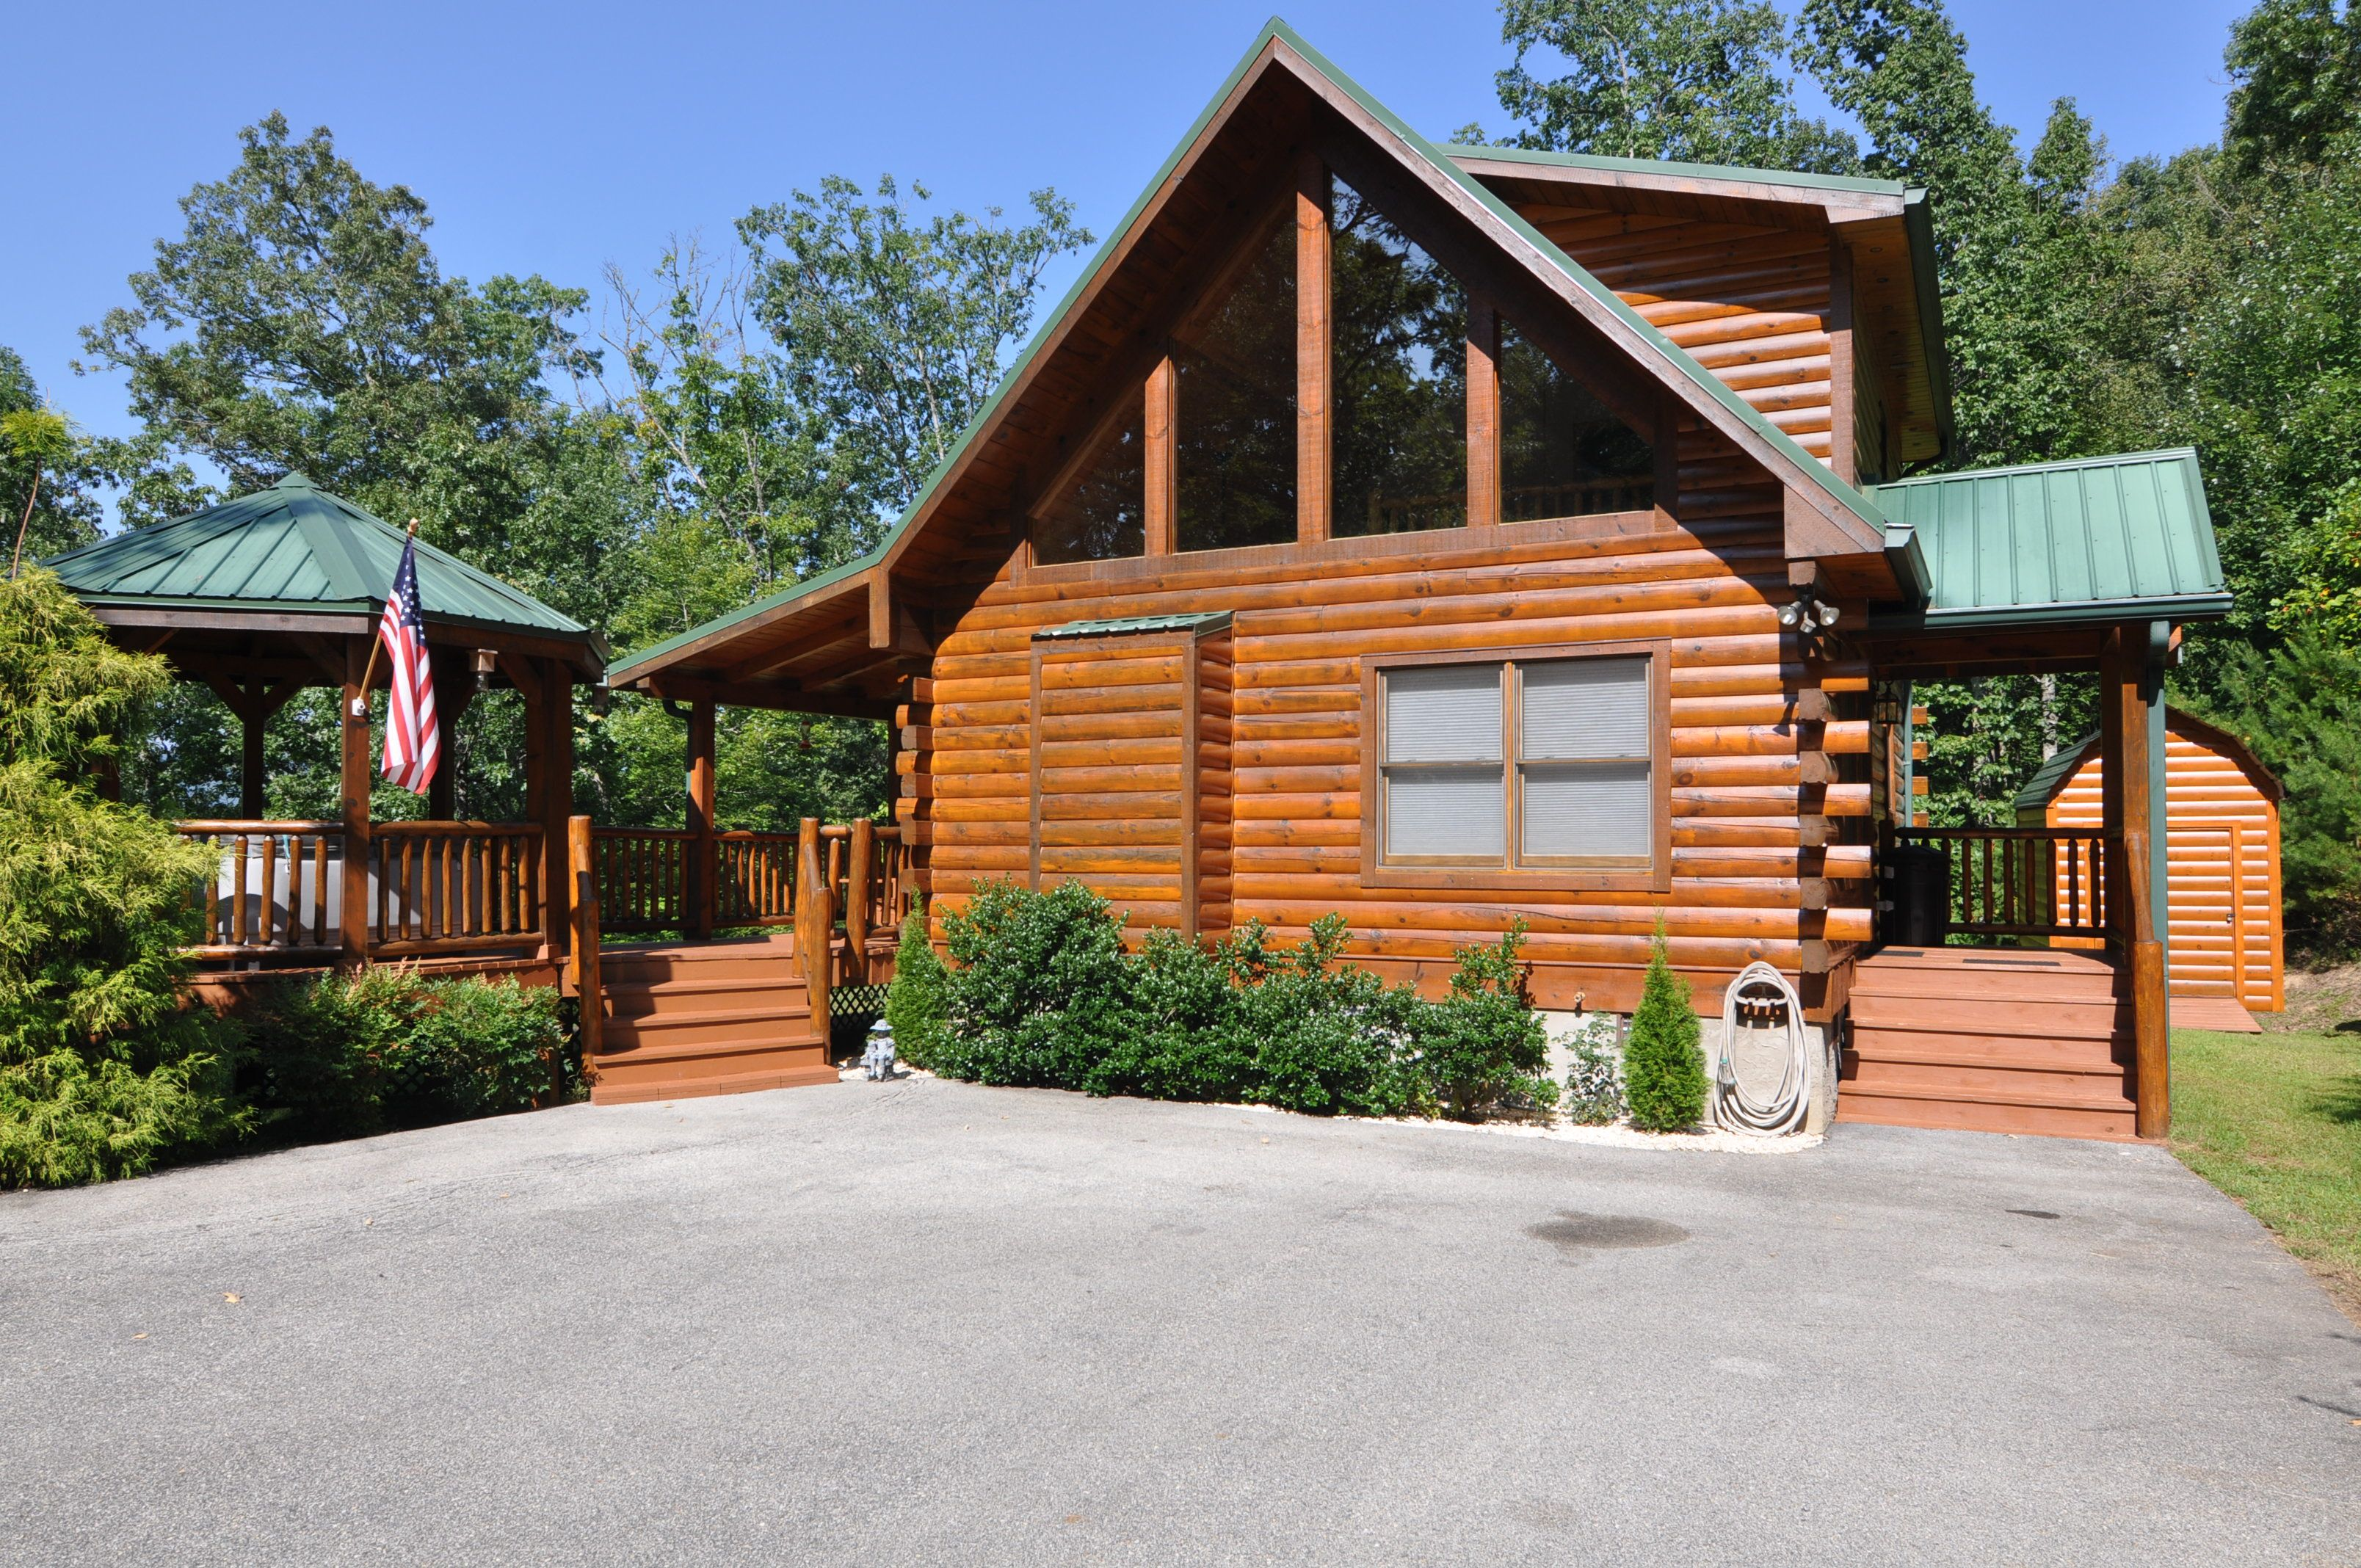 ga of detailcabin pro rental rentals blue ridge cherokee sunset cabins smaller cabin